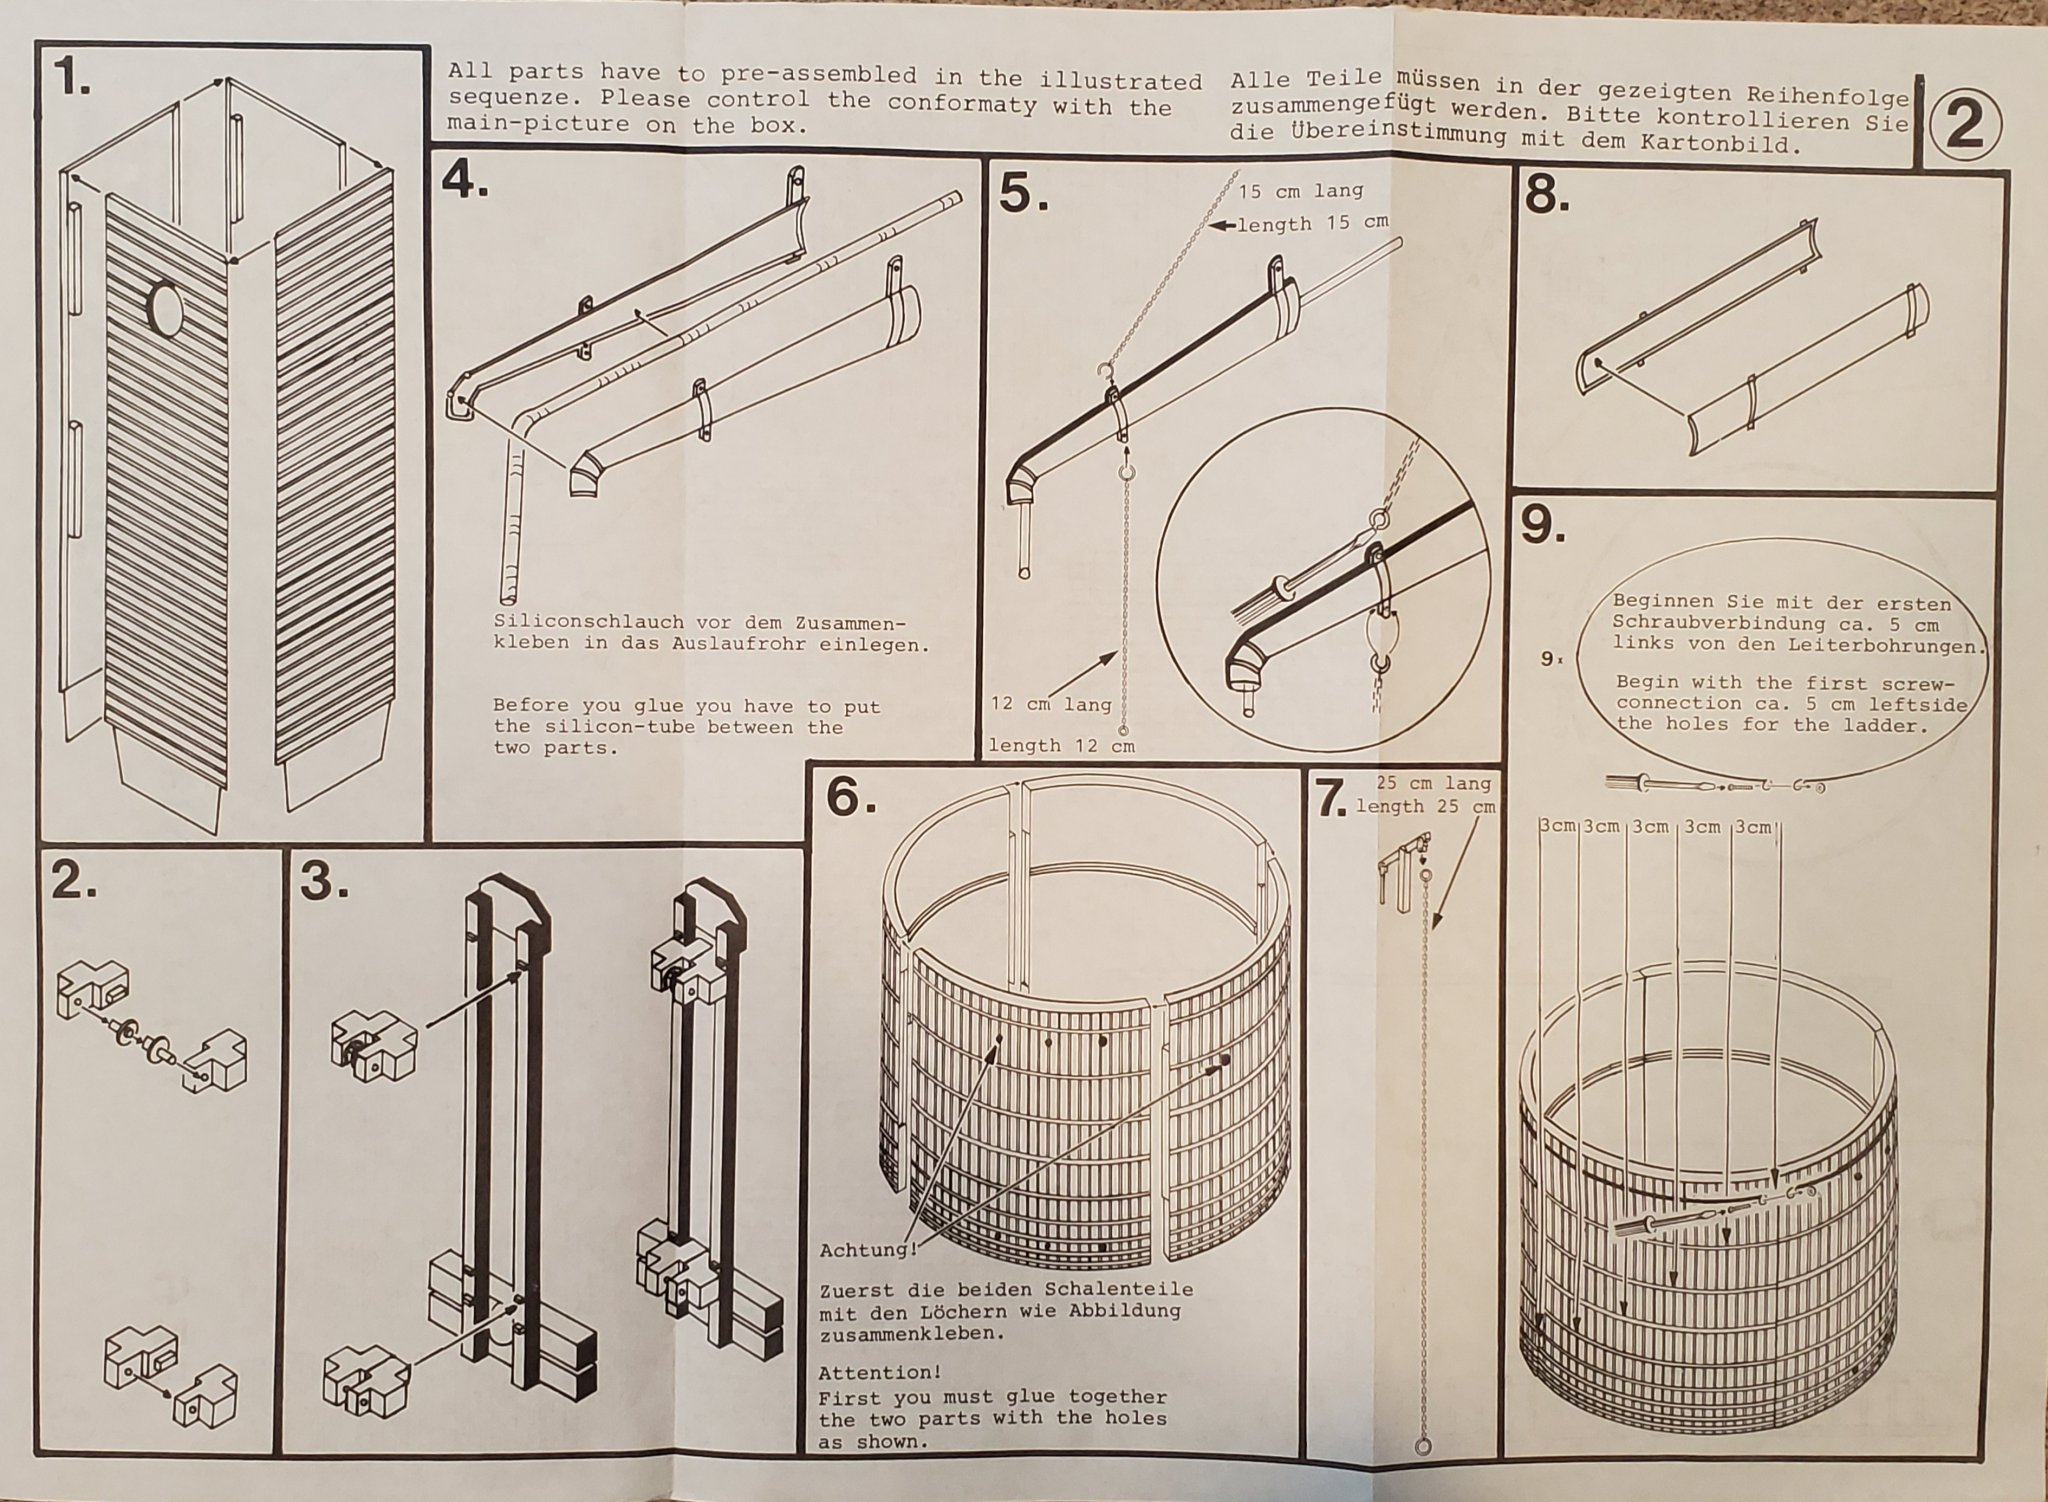 Pola 923 American Water Tower Instructions p2of6.jpg